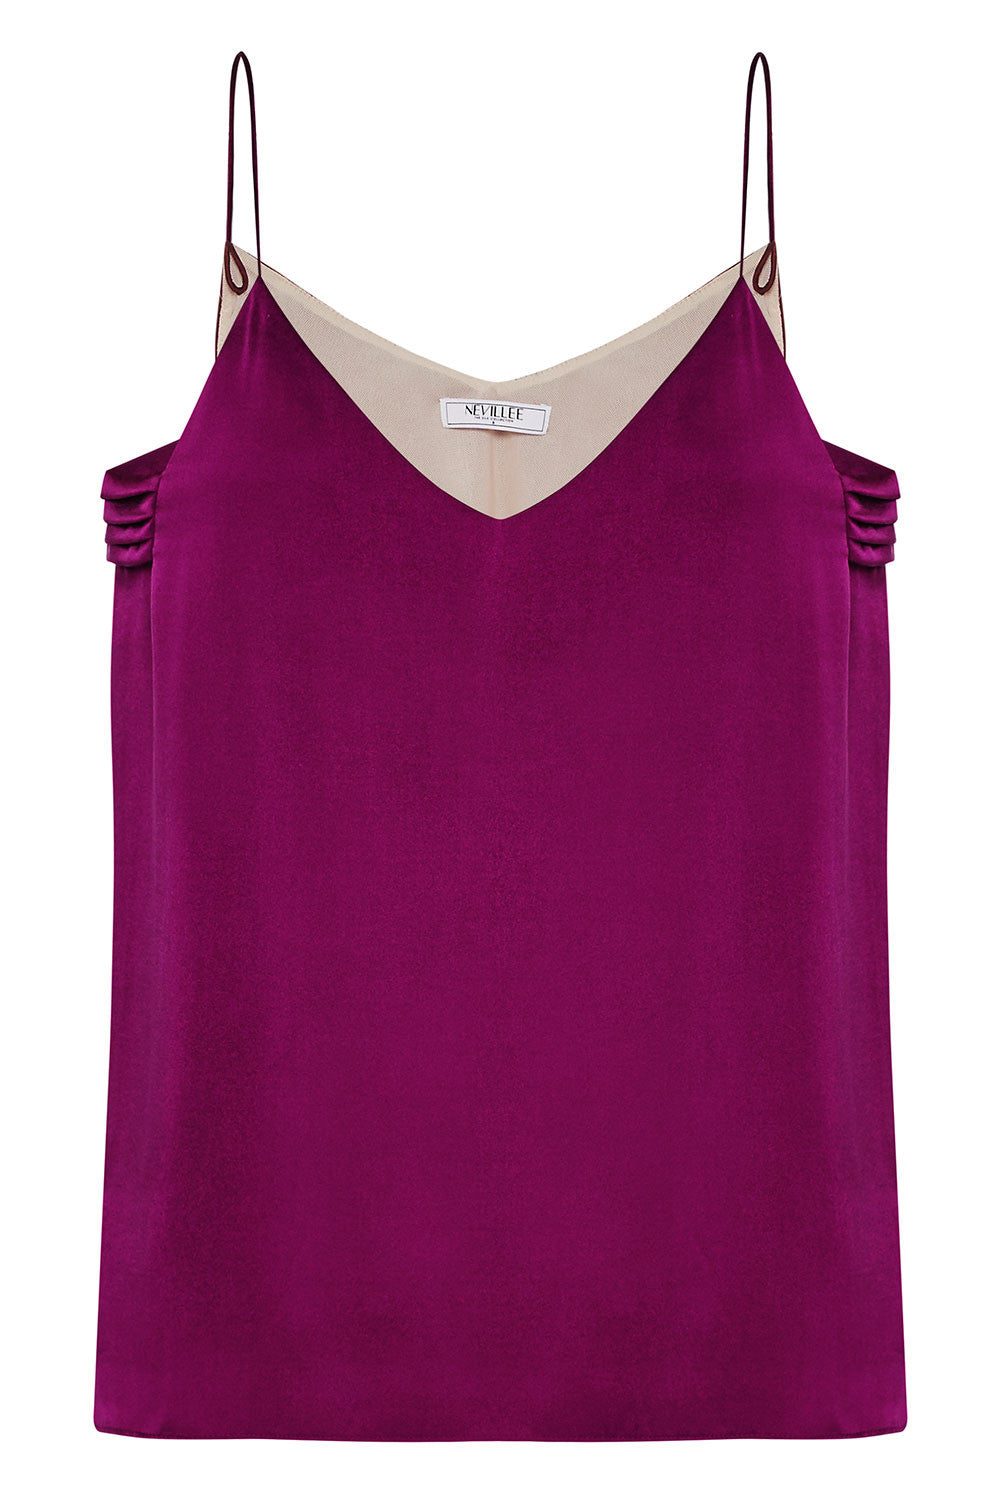 THE SLIP ON CAMISOLE - RED WINE